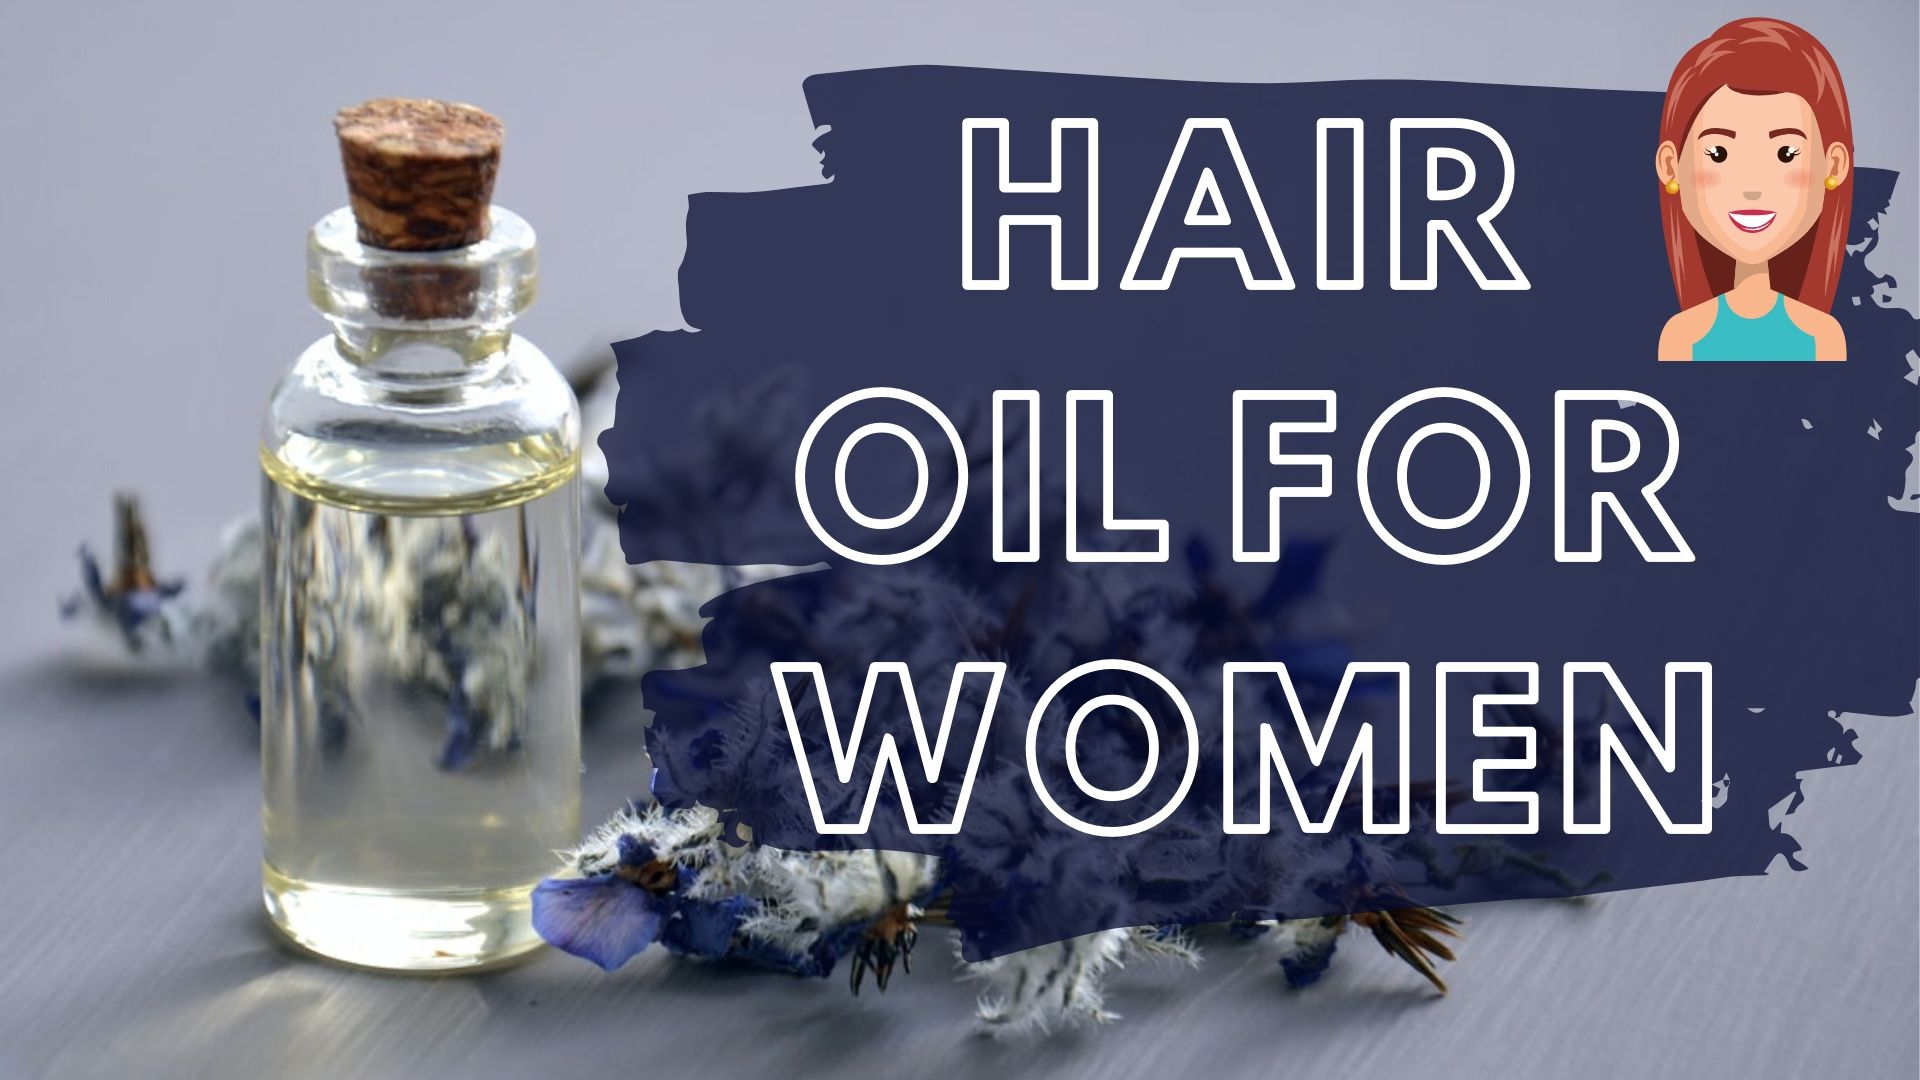 Hair Oil For Women